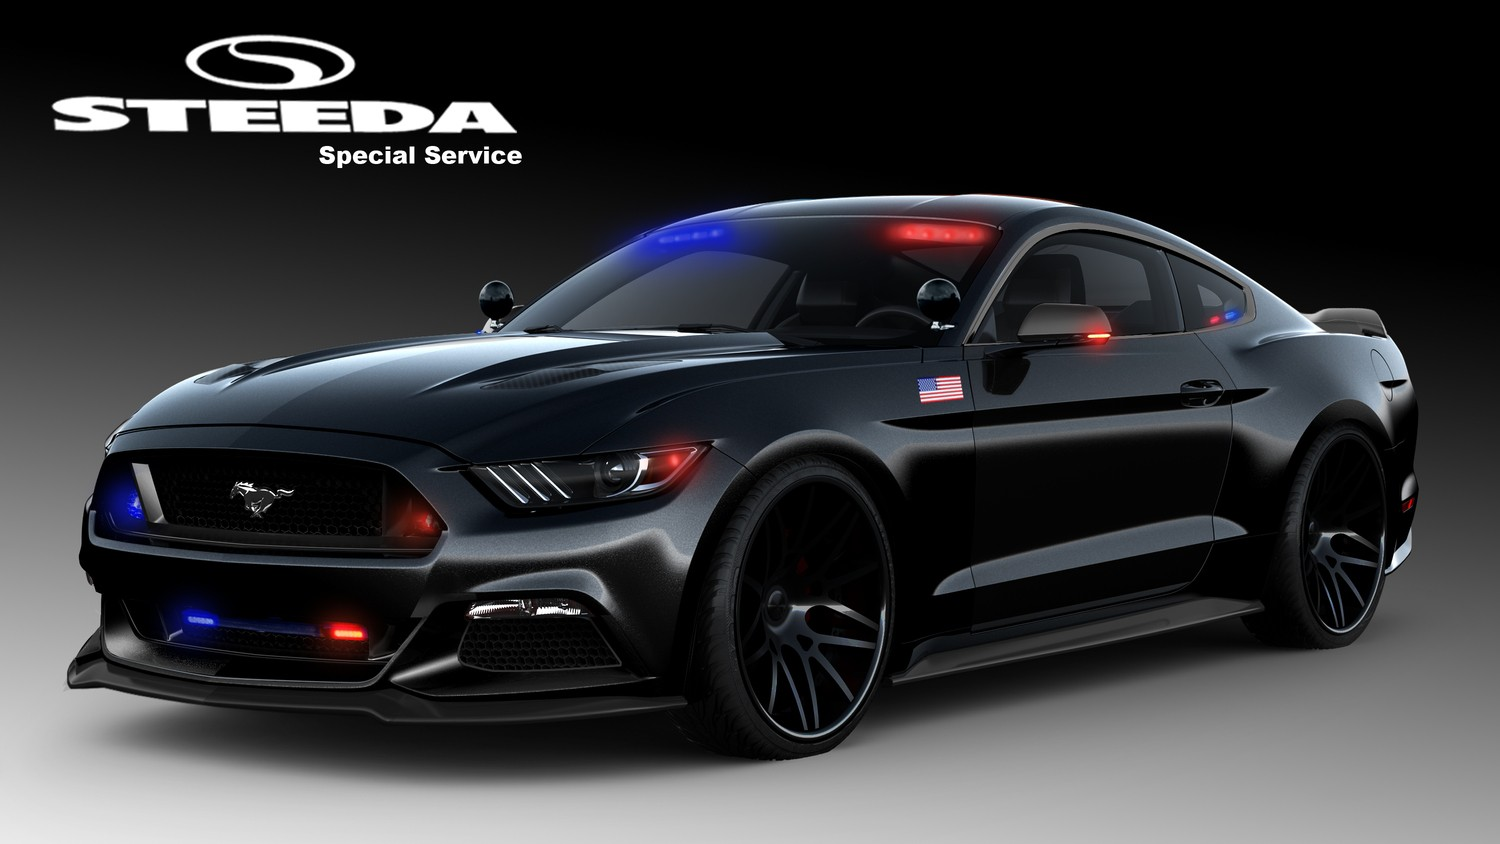 S550 Mustang Police Car from Steeda Is Ready to Protect ...